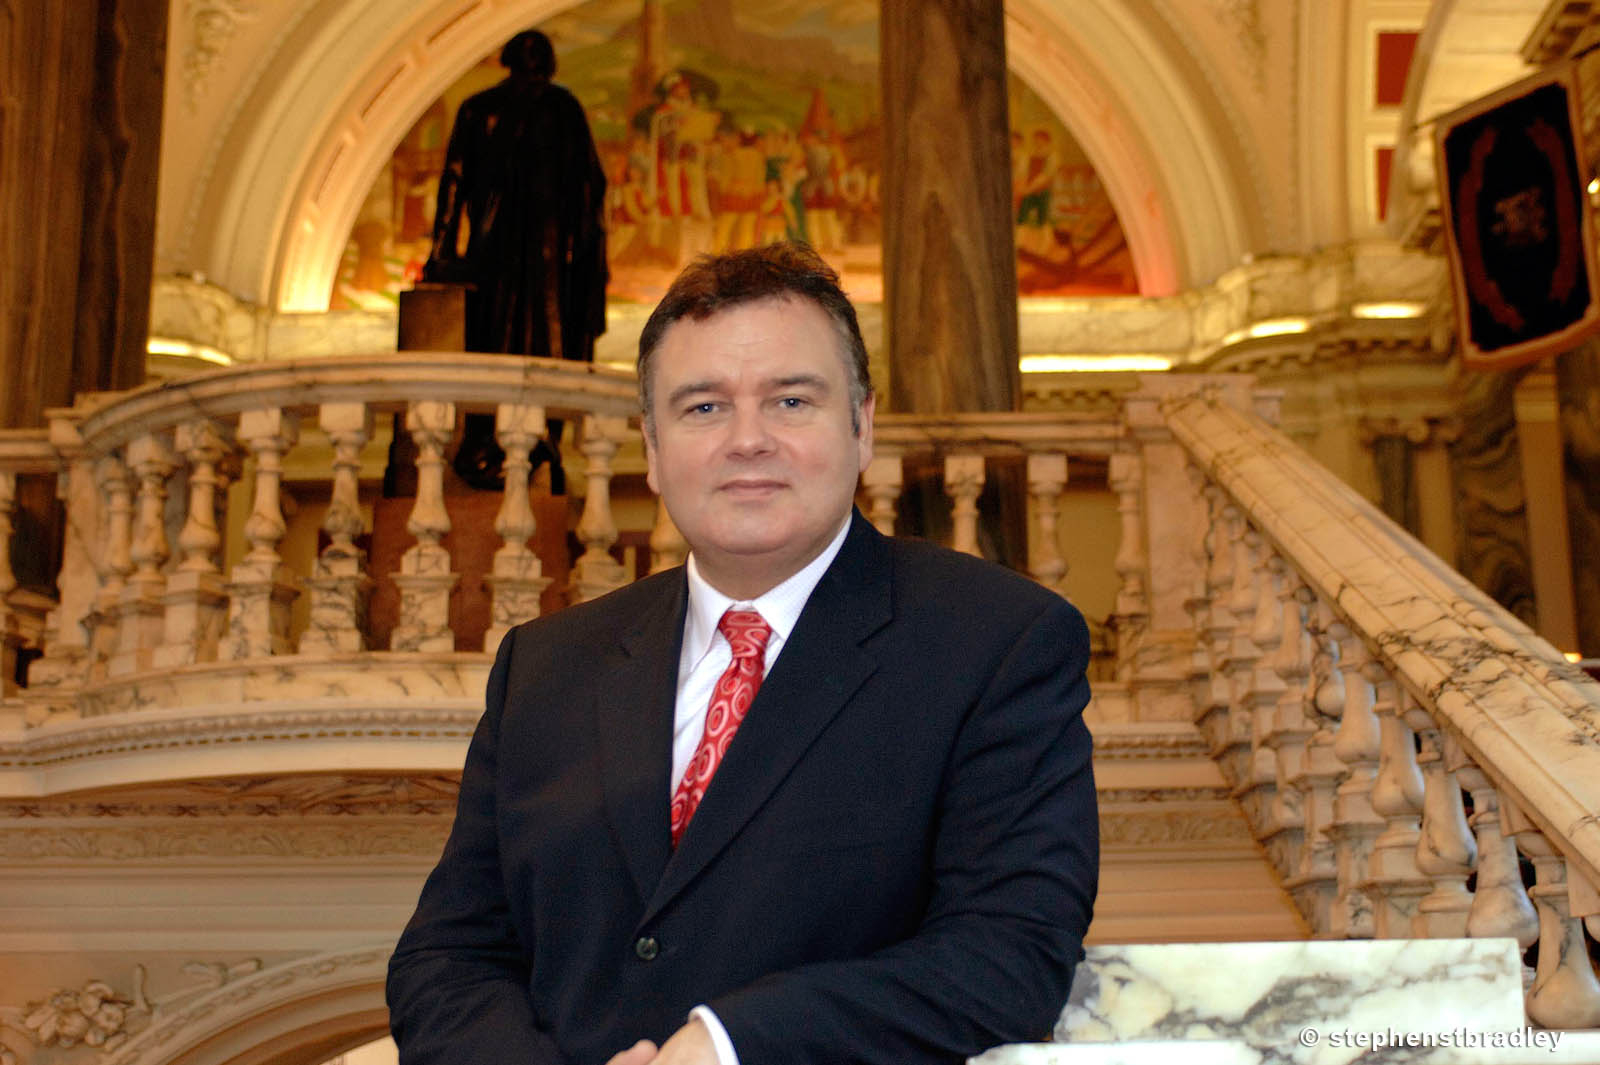 PR Photographer Dublin Ireland portfolio photo of celebrity Eamonn Holmes in Belfast City Hall, Northern Ireland - photo 6161 by Stephen S T Bradley PR photography and video production services Dublin, Ireland